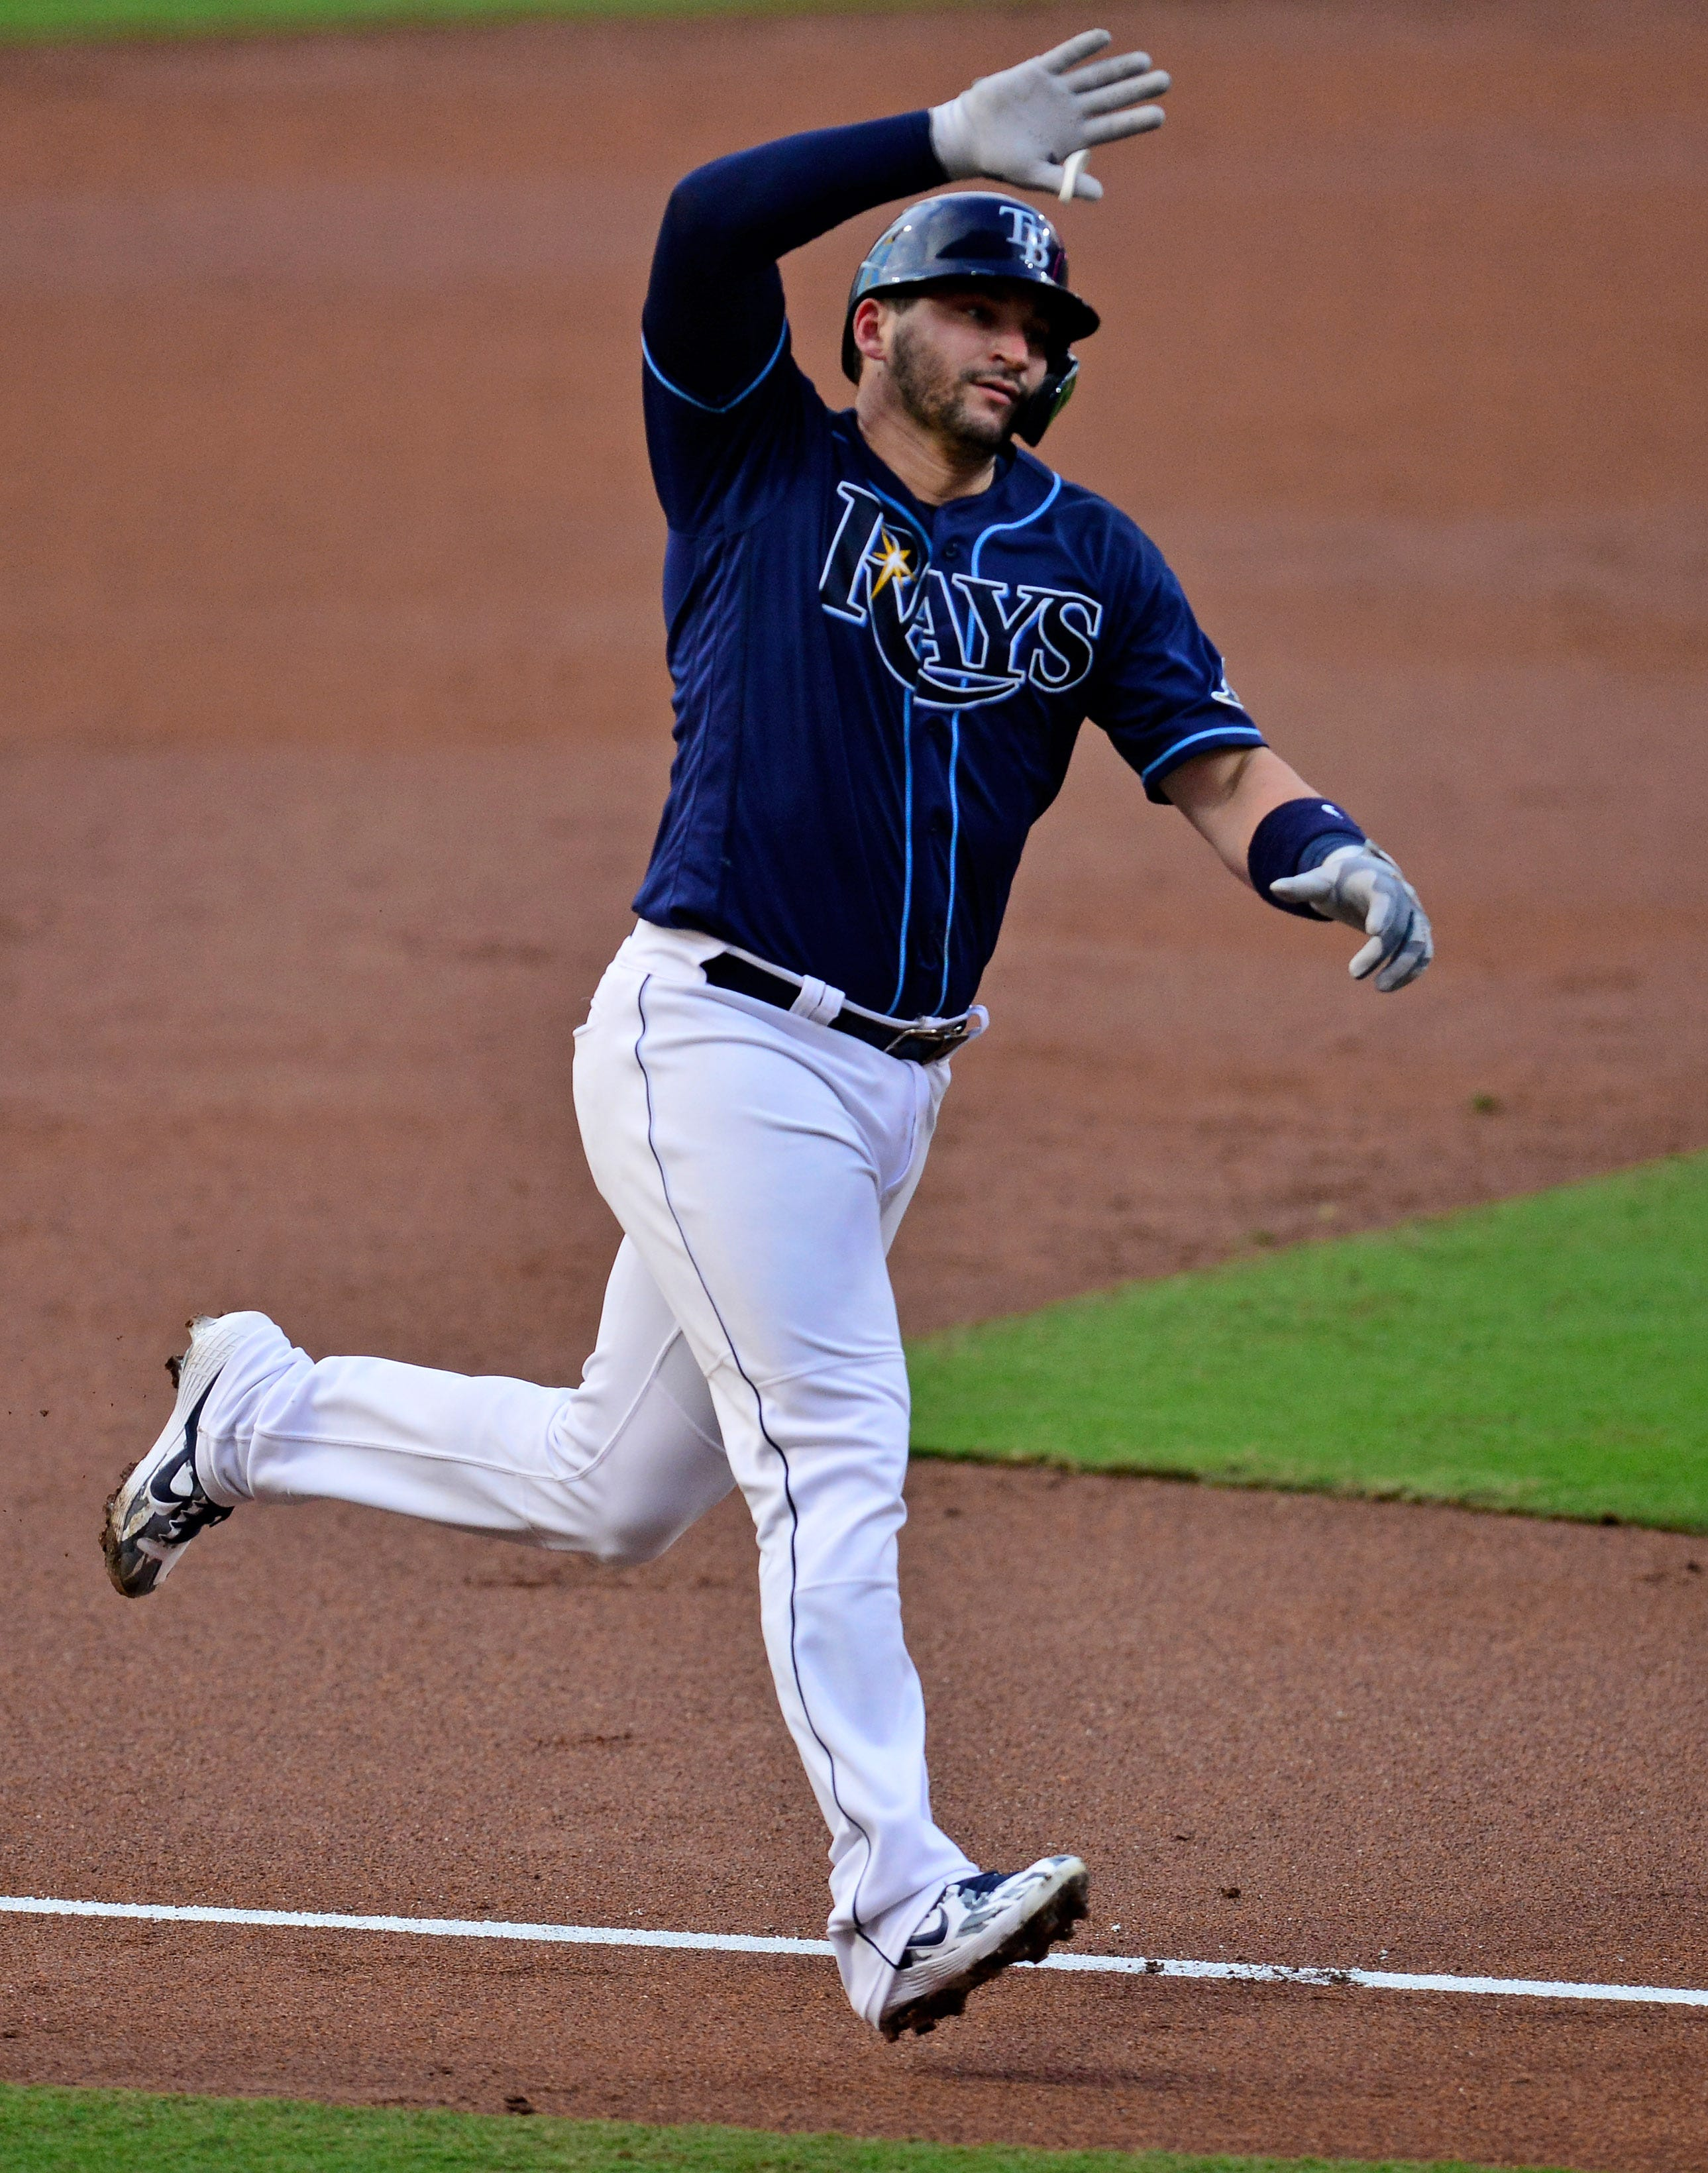 Yankees strategy backfires, Rays slug four homers to even ALDS 1-1